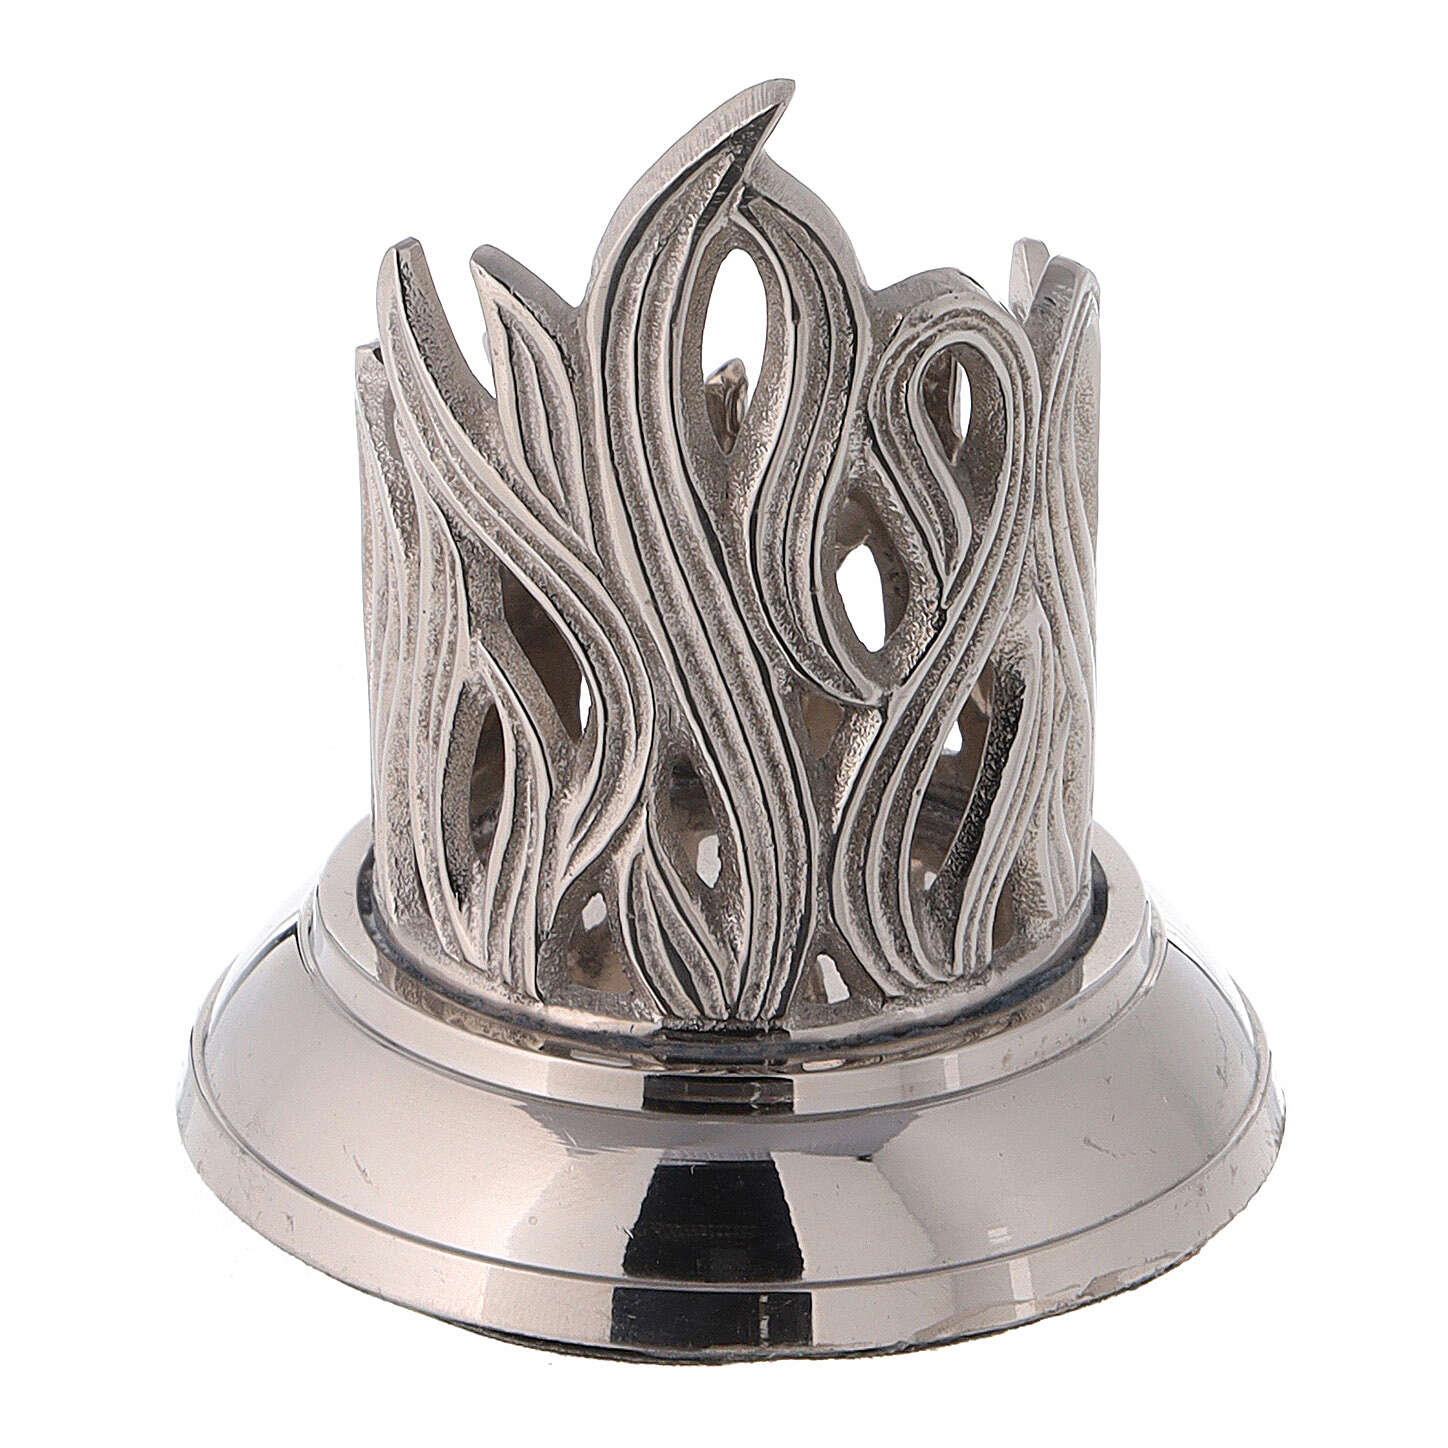 Candlestick with engraved flames nickel-plated brass 1 1/2 in 4